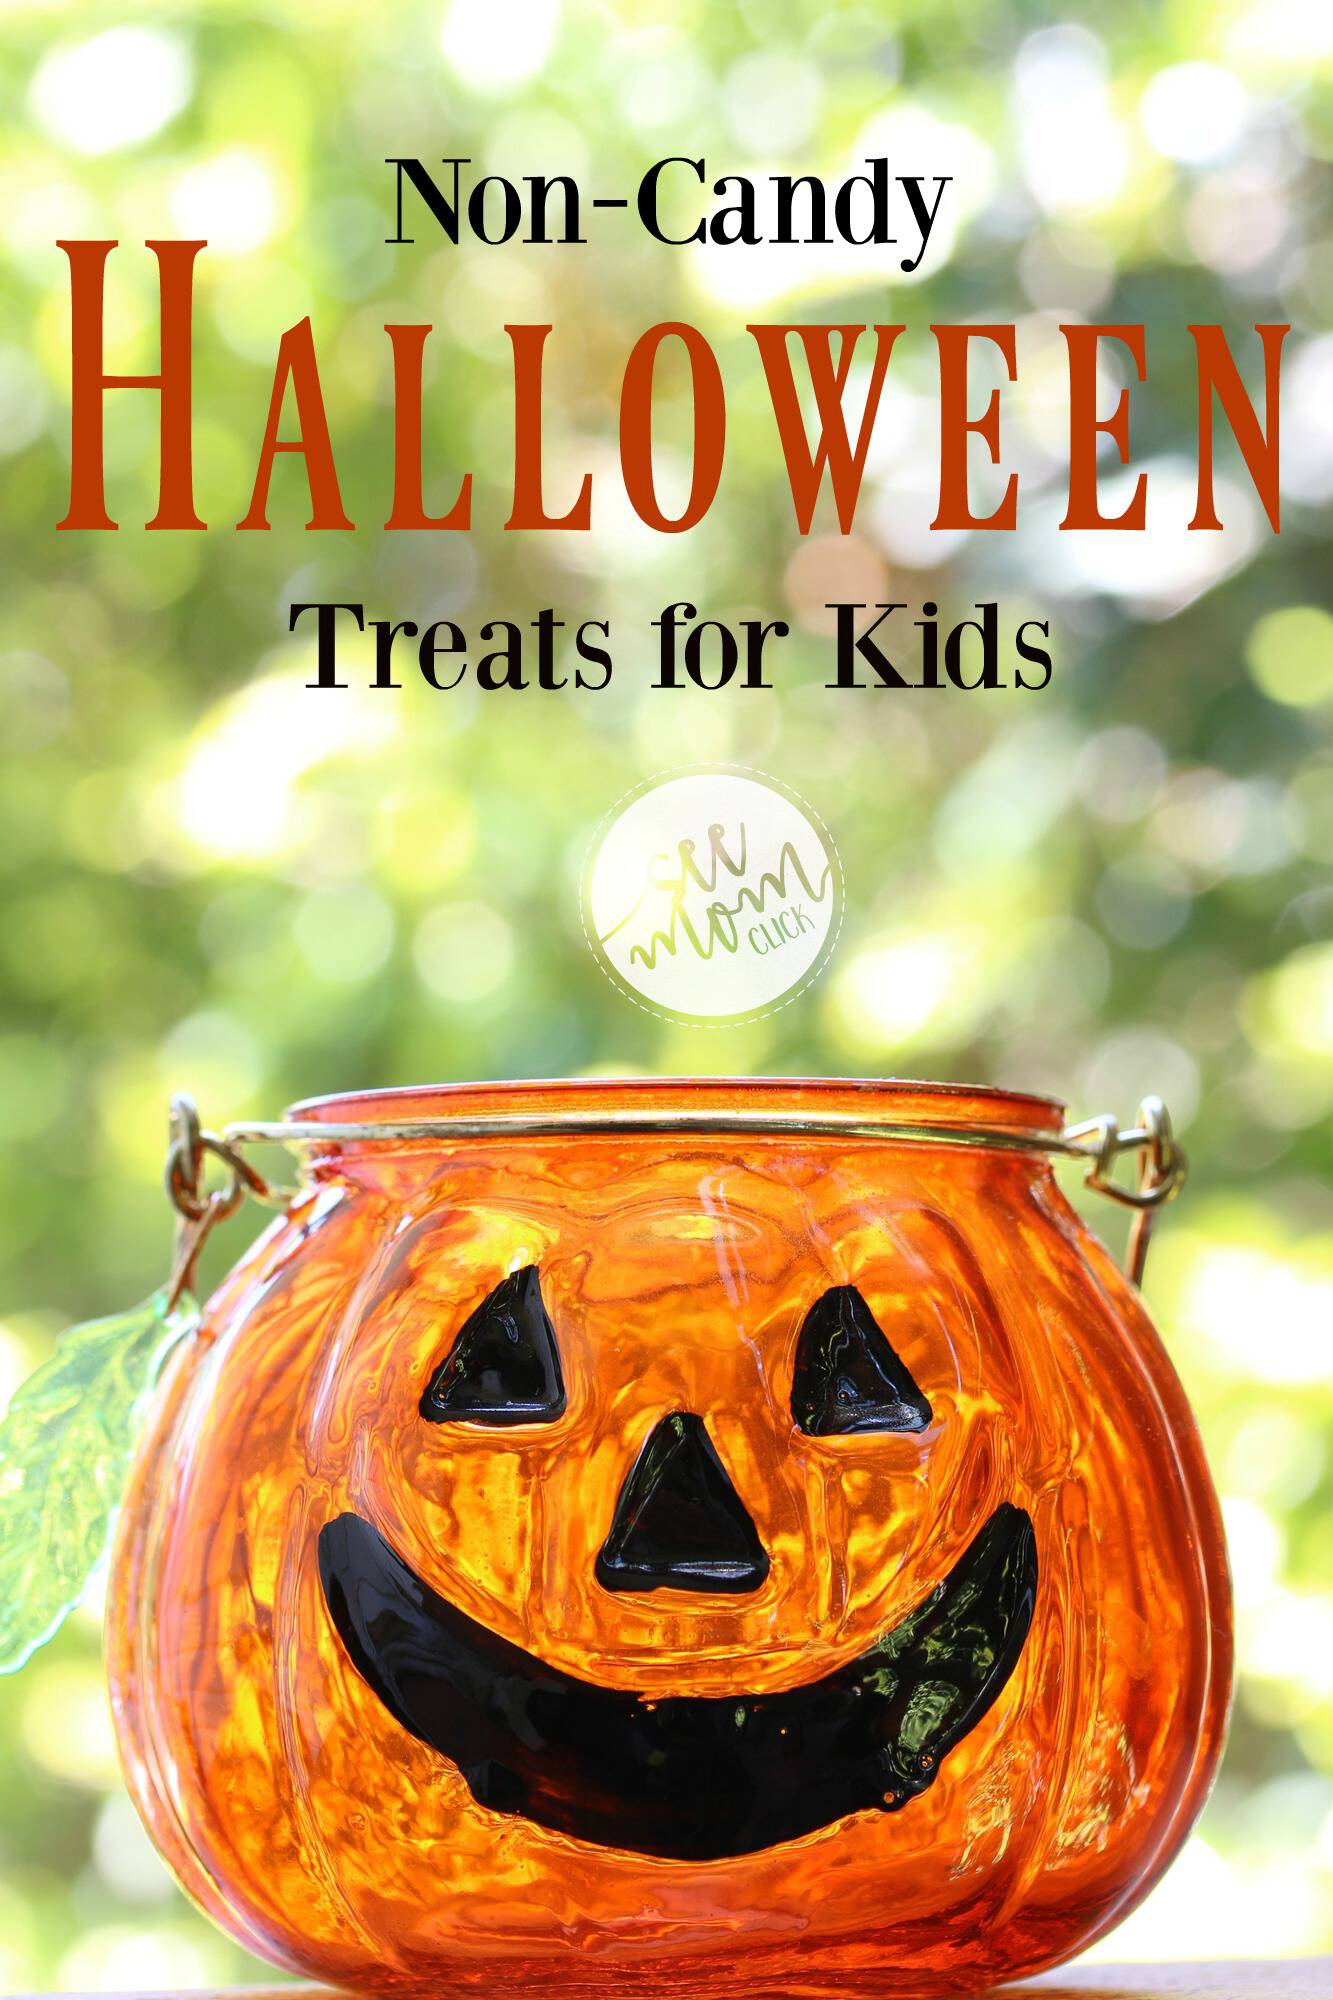 Halloween is coming! Here are 11 ideas for fun Halloween treats for kids that don't include candy you'll probably eat yourself before trick-or-treat night!Halloween is coming! Here are 11 ideas for fun Halloween treats for kids that don't include candy you'll probably eat yourself before trick-or-treat night!